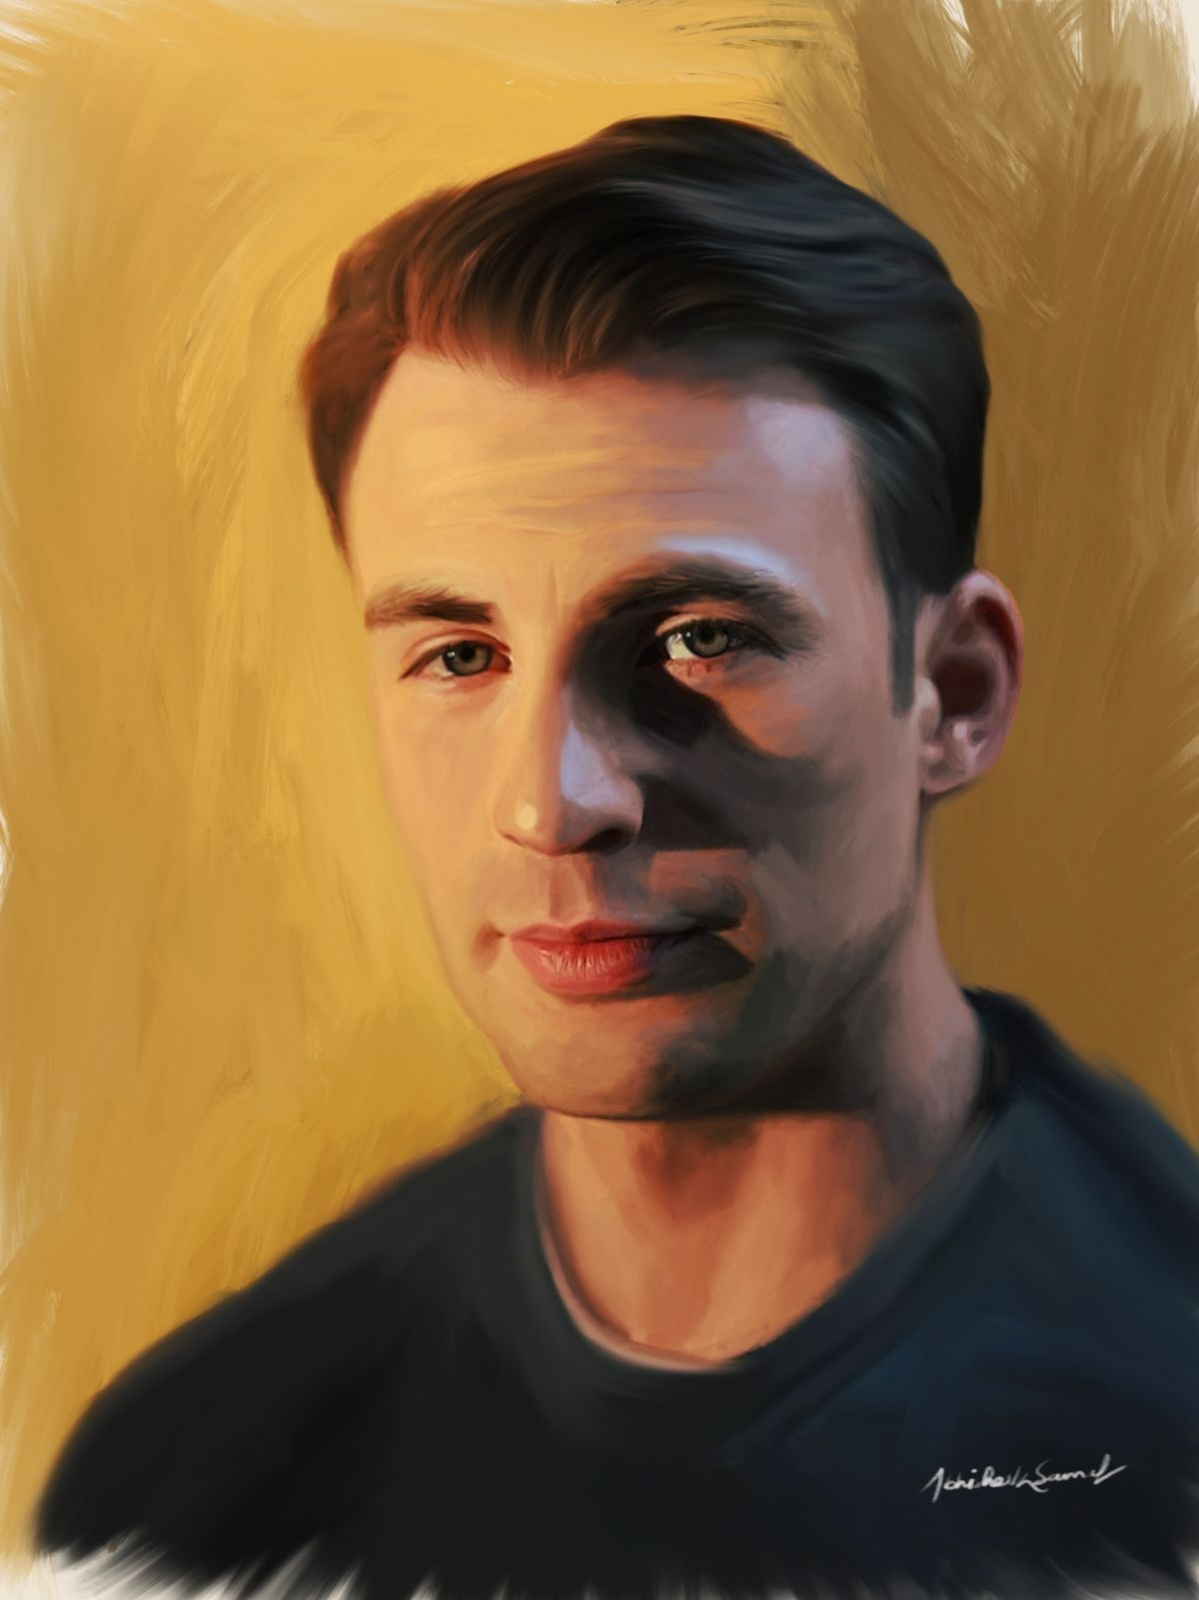 digital painting celebrity portrait chris evans by abhishek samal